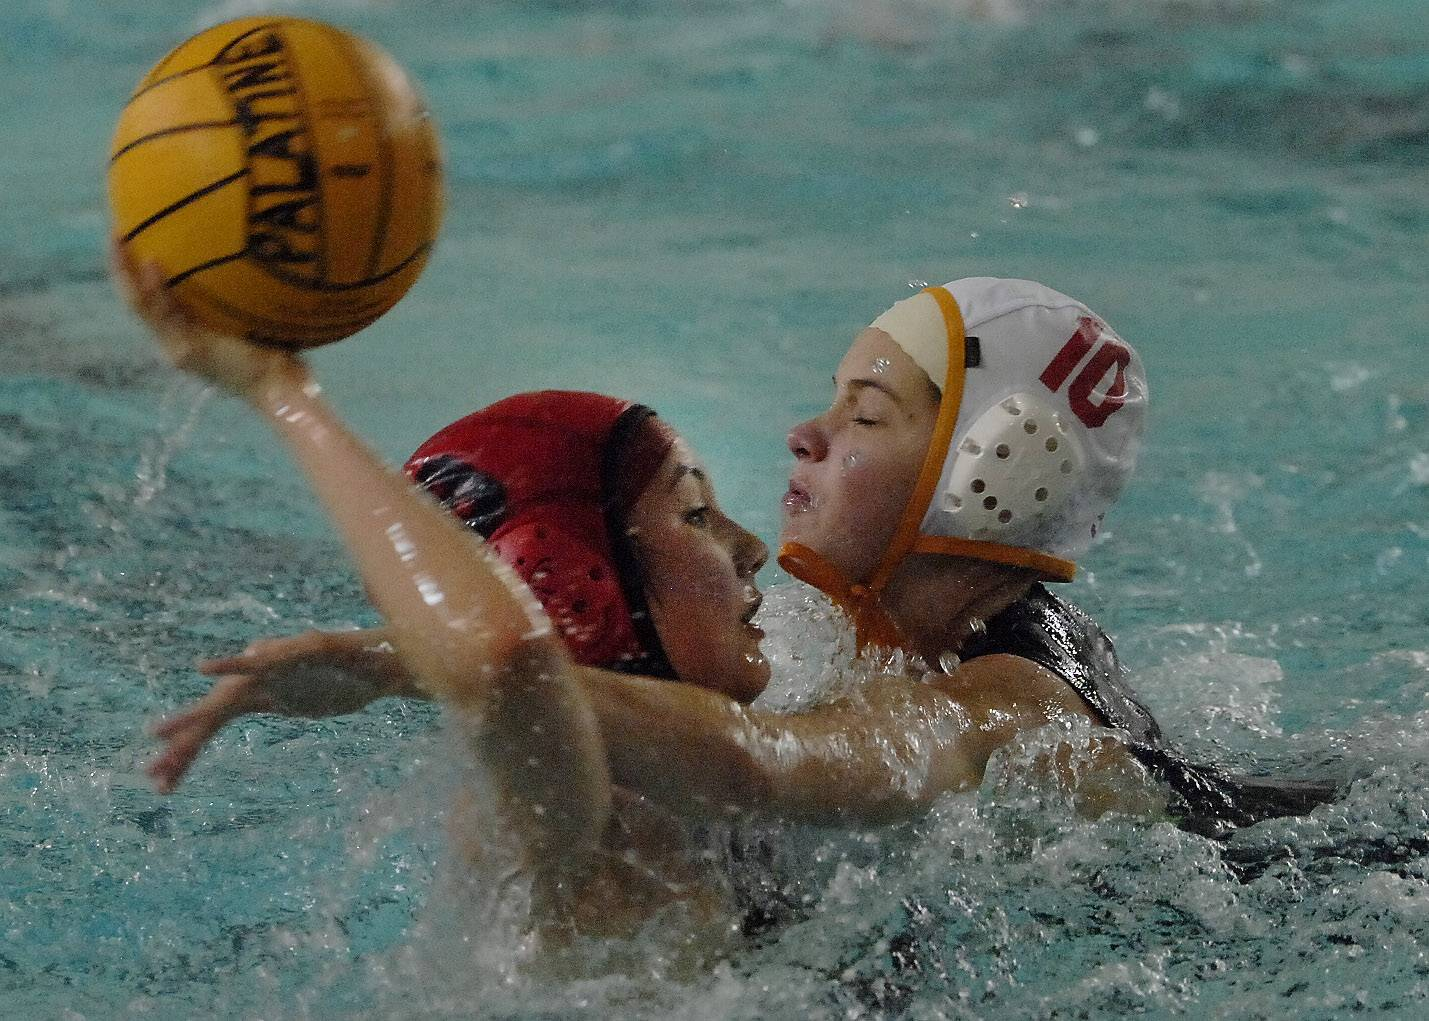 Barrington's Willa Wu attempts a shot on Becca Kasner of Schaumburg on Thursday at Palatine.